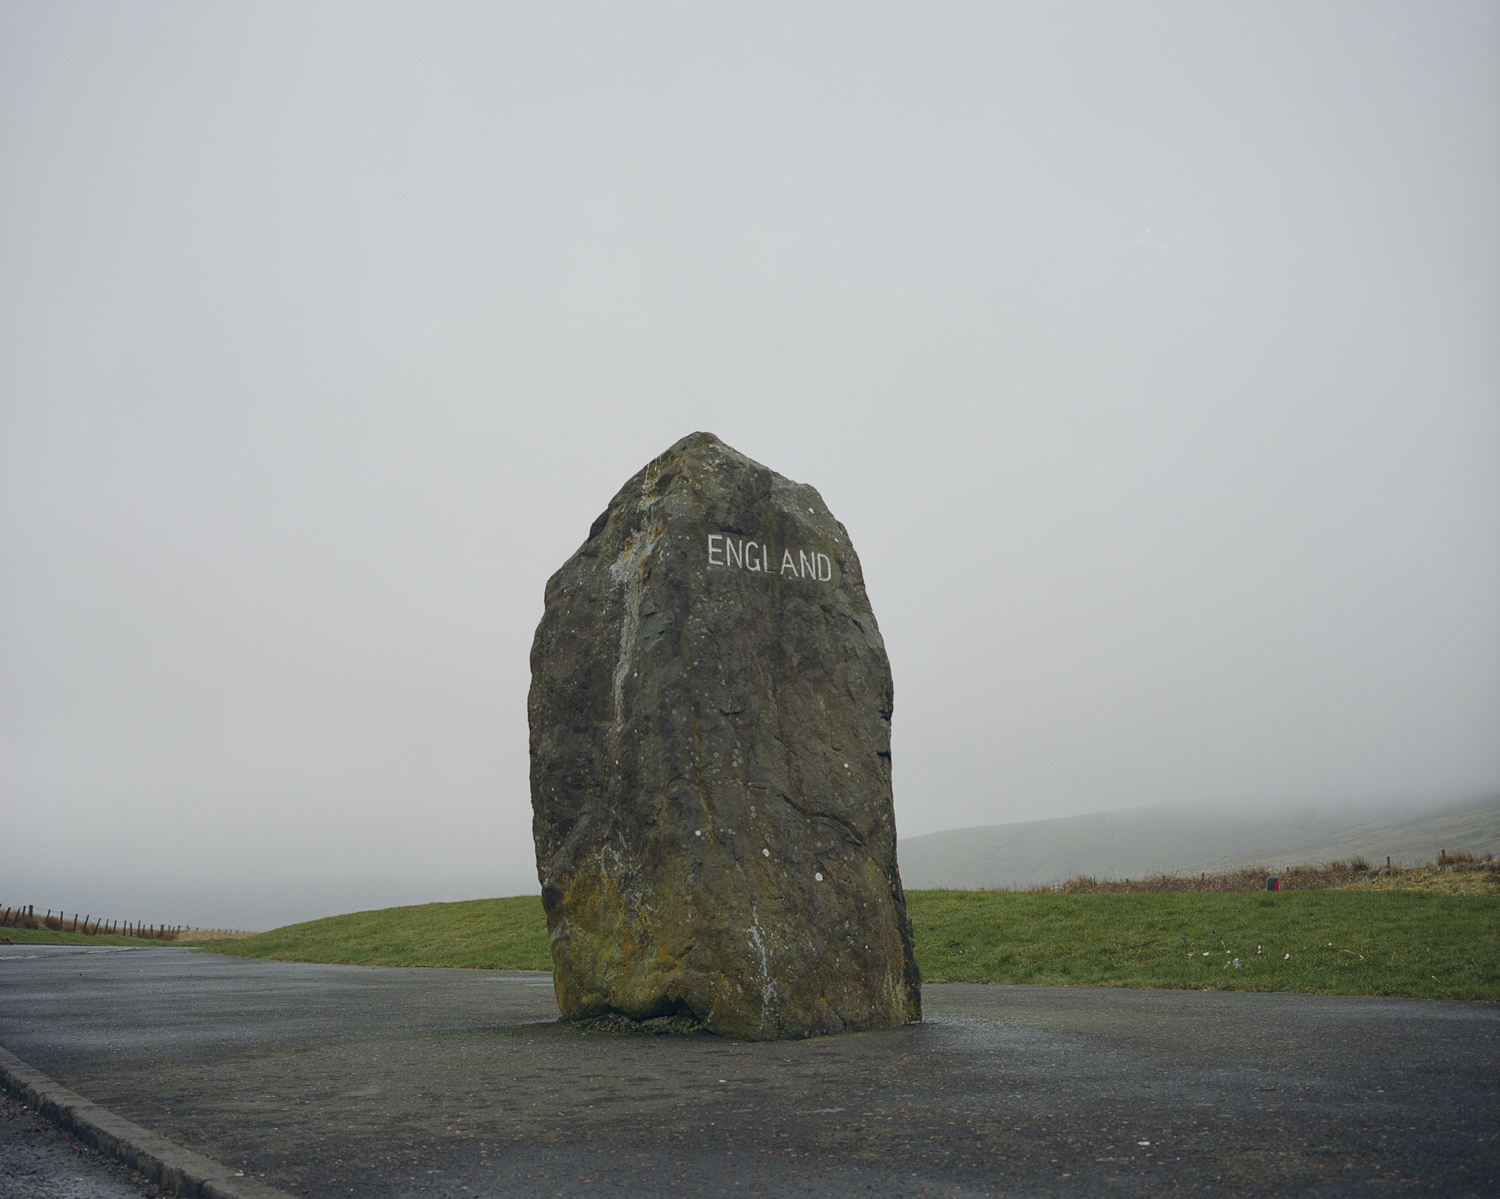 A large stone marking the English side of the border with Scotland on the A68 between Jedburgh, Scotland and Newcastle, England.